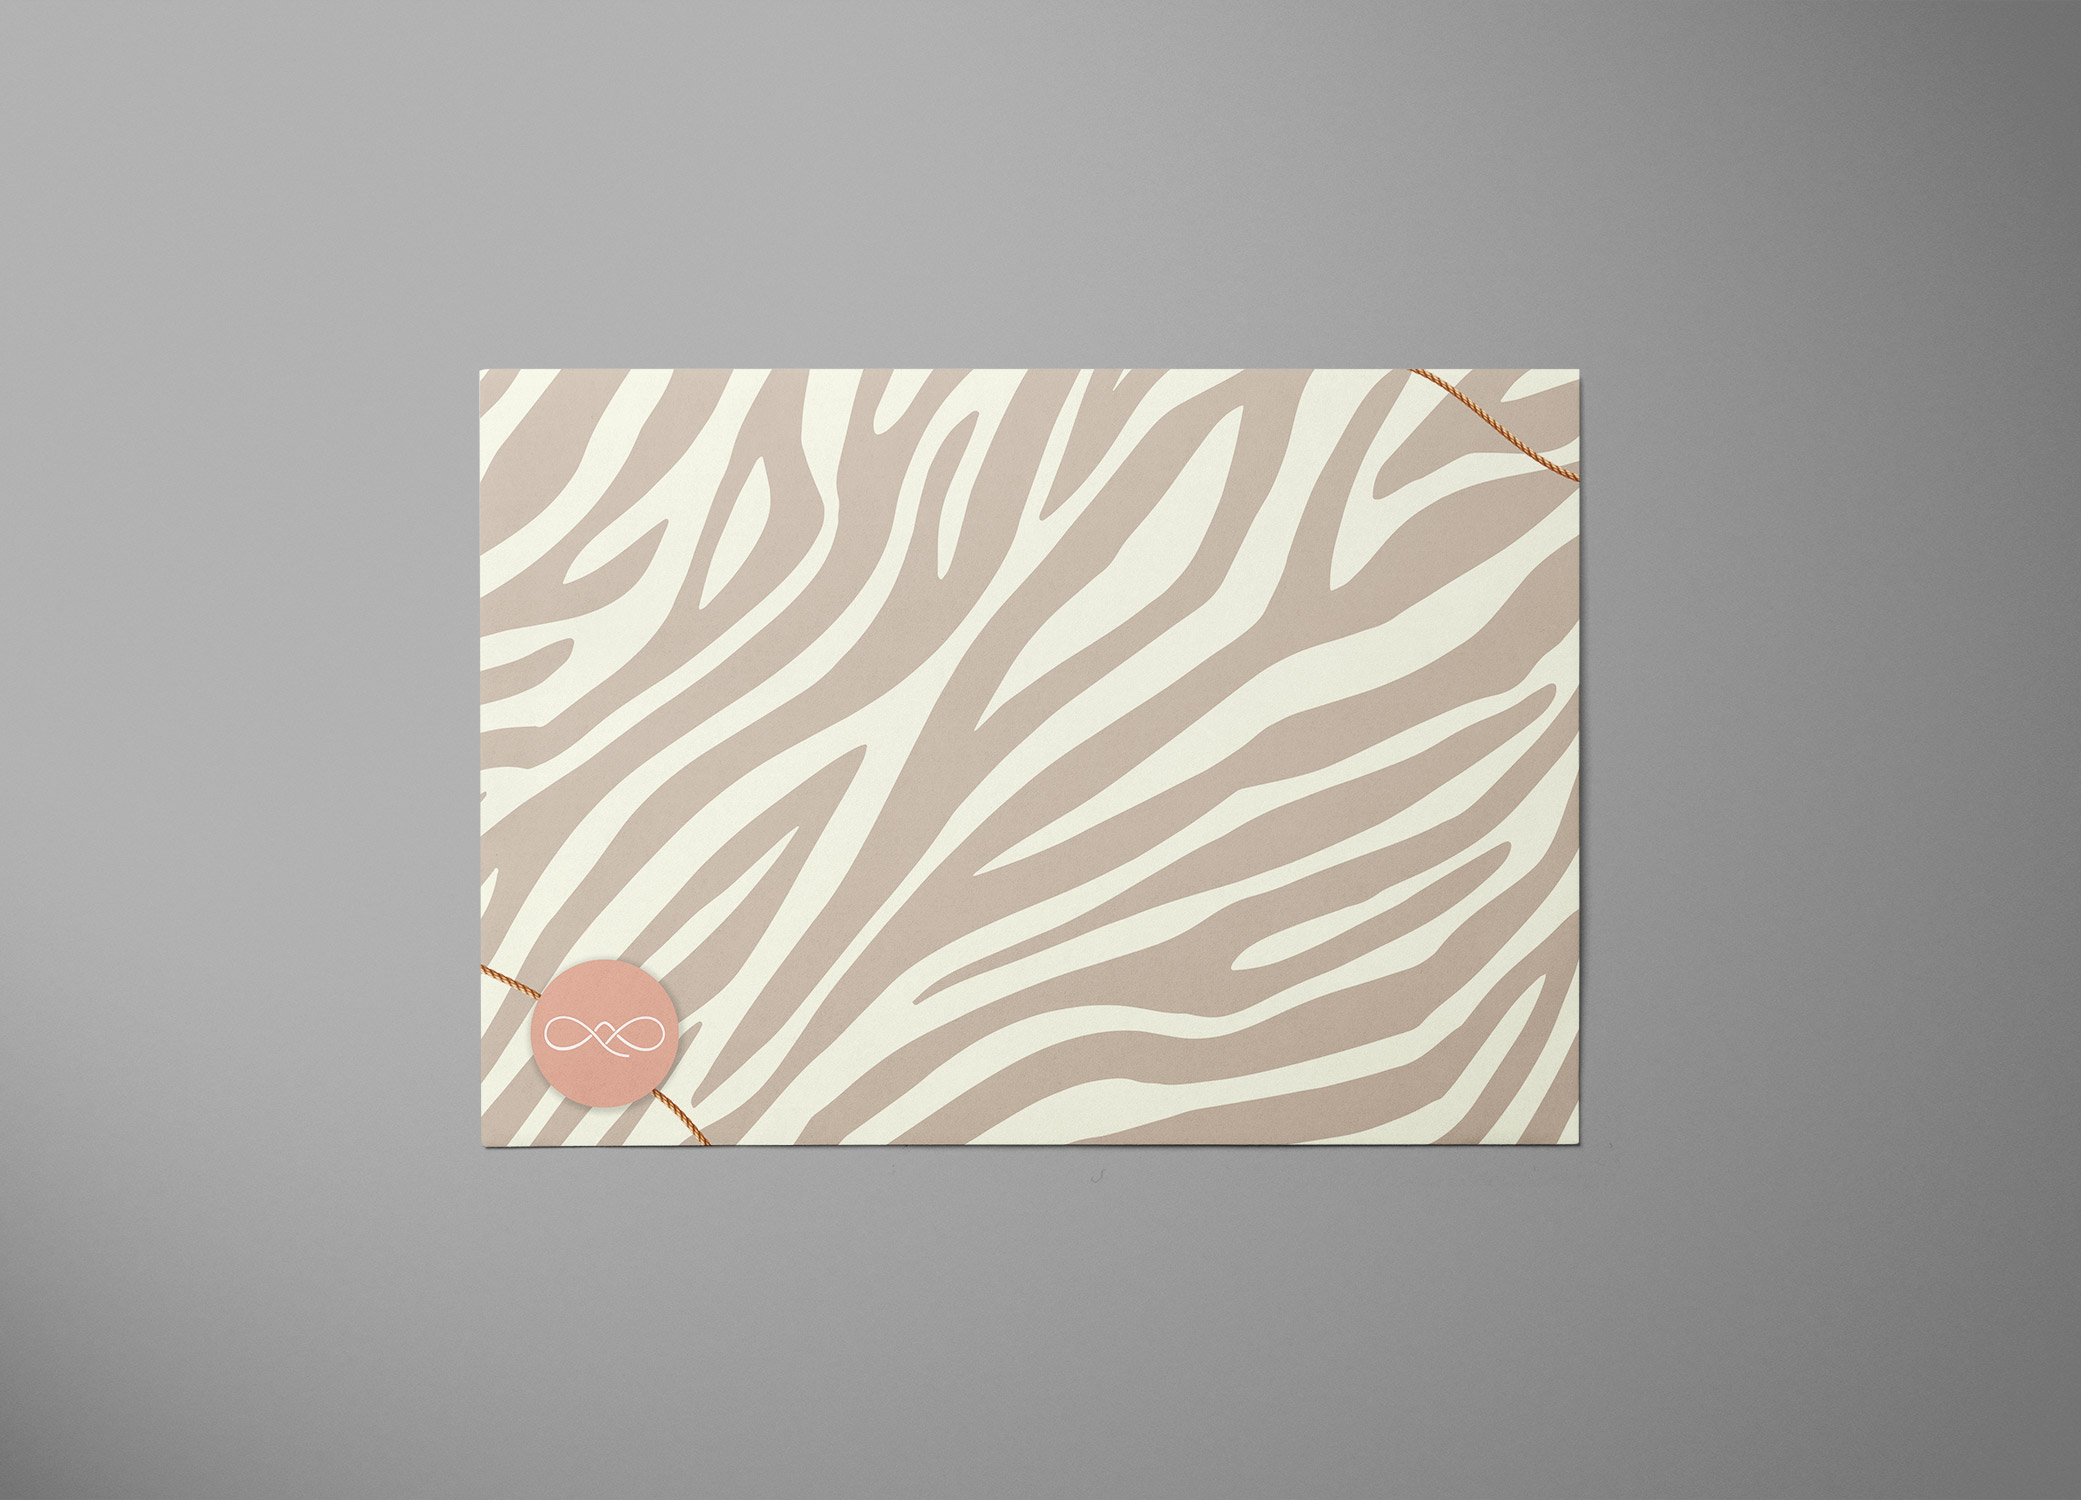 Simple Sexy envelope design in a blended zebra pattern with a touch of gold at opposite corners and logo in lower left.